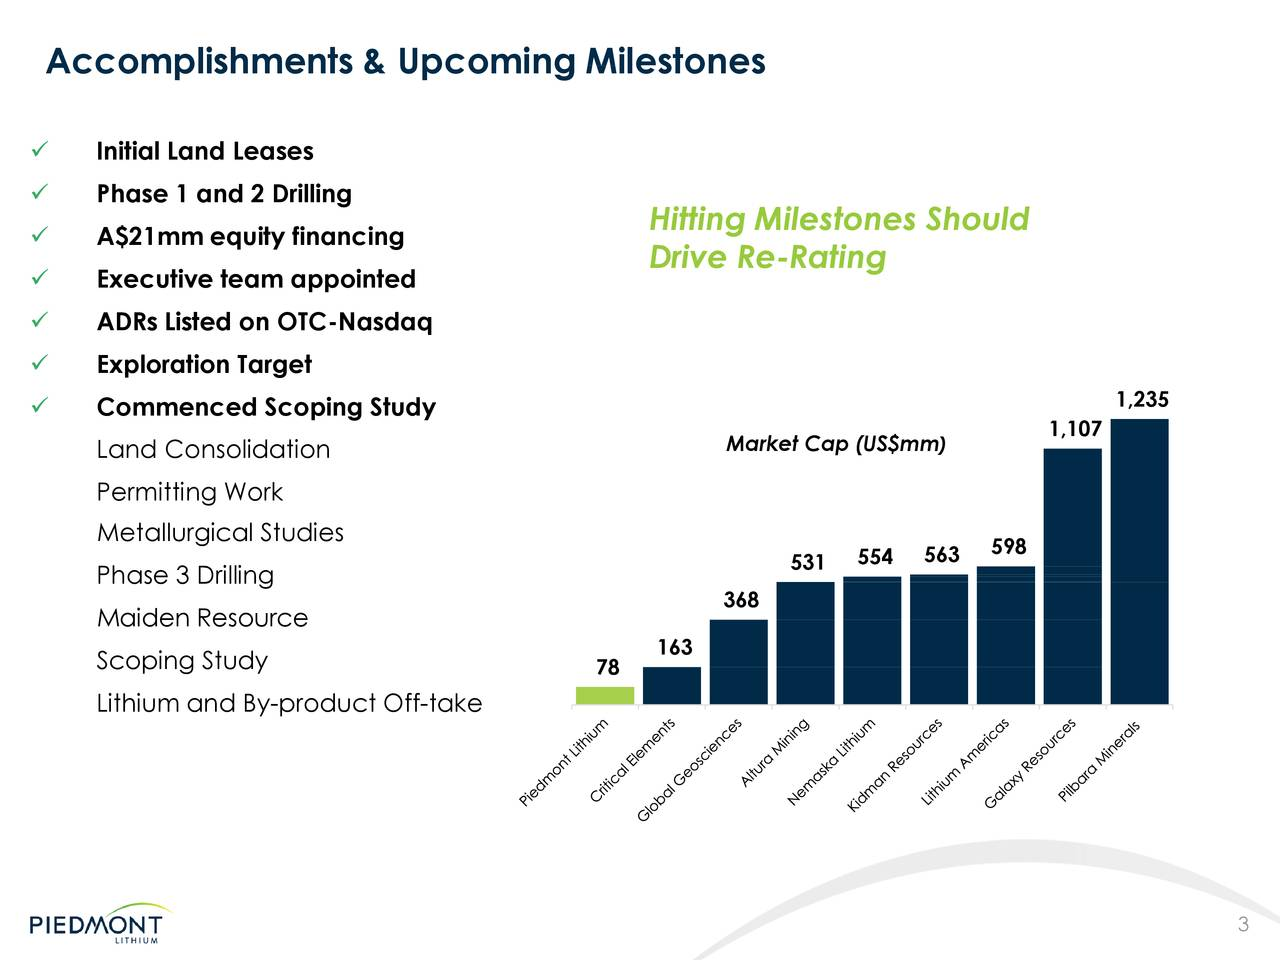  Initial Land Leases  Phase 1 and 2 Drilling Hitting Milestones Should  A$21mm equity financing Drive Re-Rating  Executive team appointed  ADRs Listed on OTC-Nasdaq  Exploration Target  Commenced Scoping Study 1,235 Market Cap (US$m) 1,107 Land Consolidation Permitting Work Metallurgical Studies 531 554 563 598 Phase 3 Drilling Maiden Resource 368 Scoping Study 78 163 Lithium and By-product Off-take 3